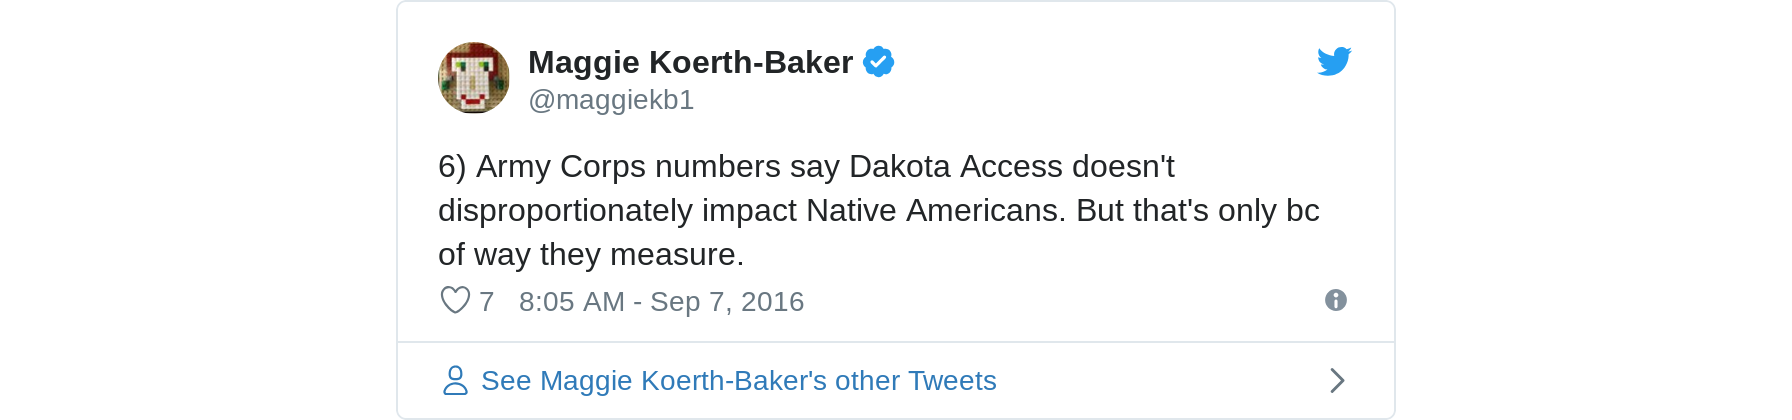 6) Army Corps numbers say Dakota Access doesn't disproportionately impact Native Americans. But that's only bc of way they measure.